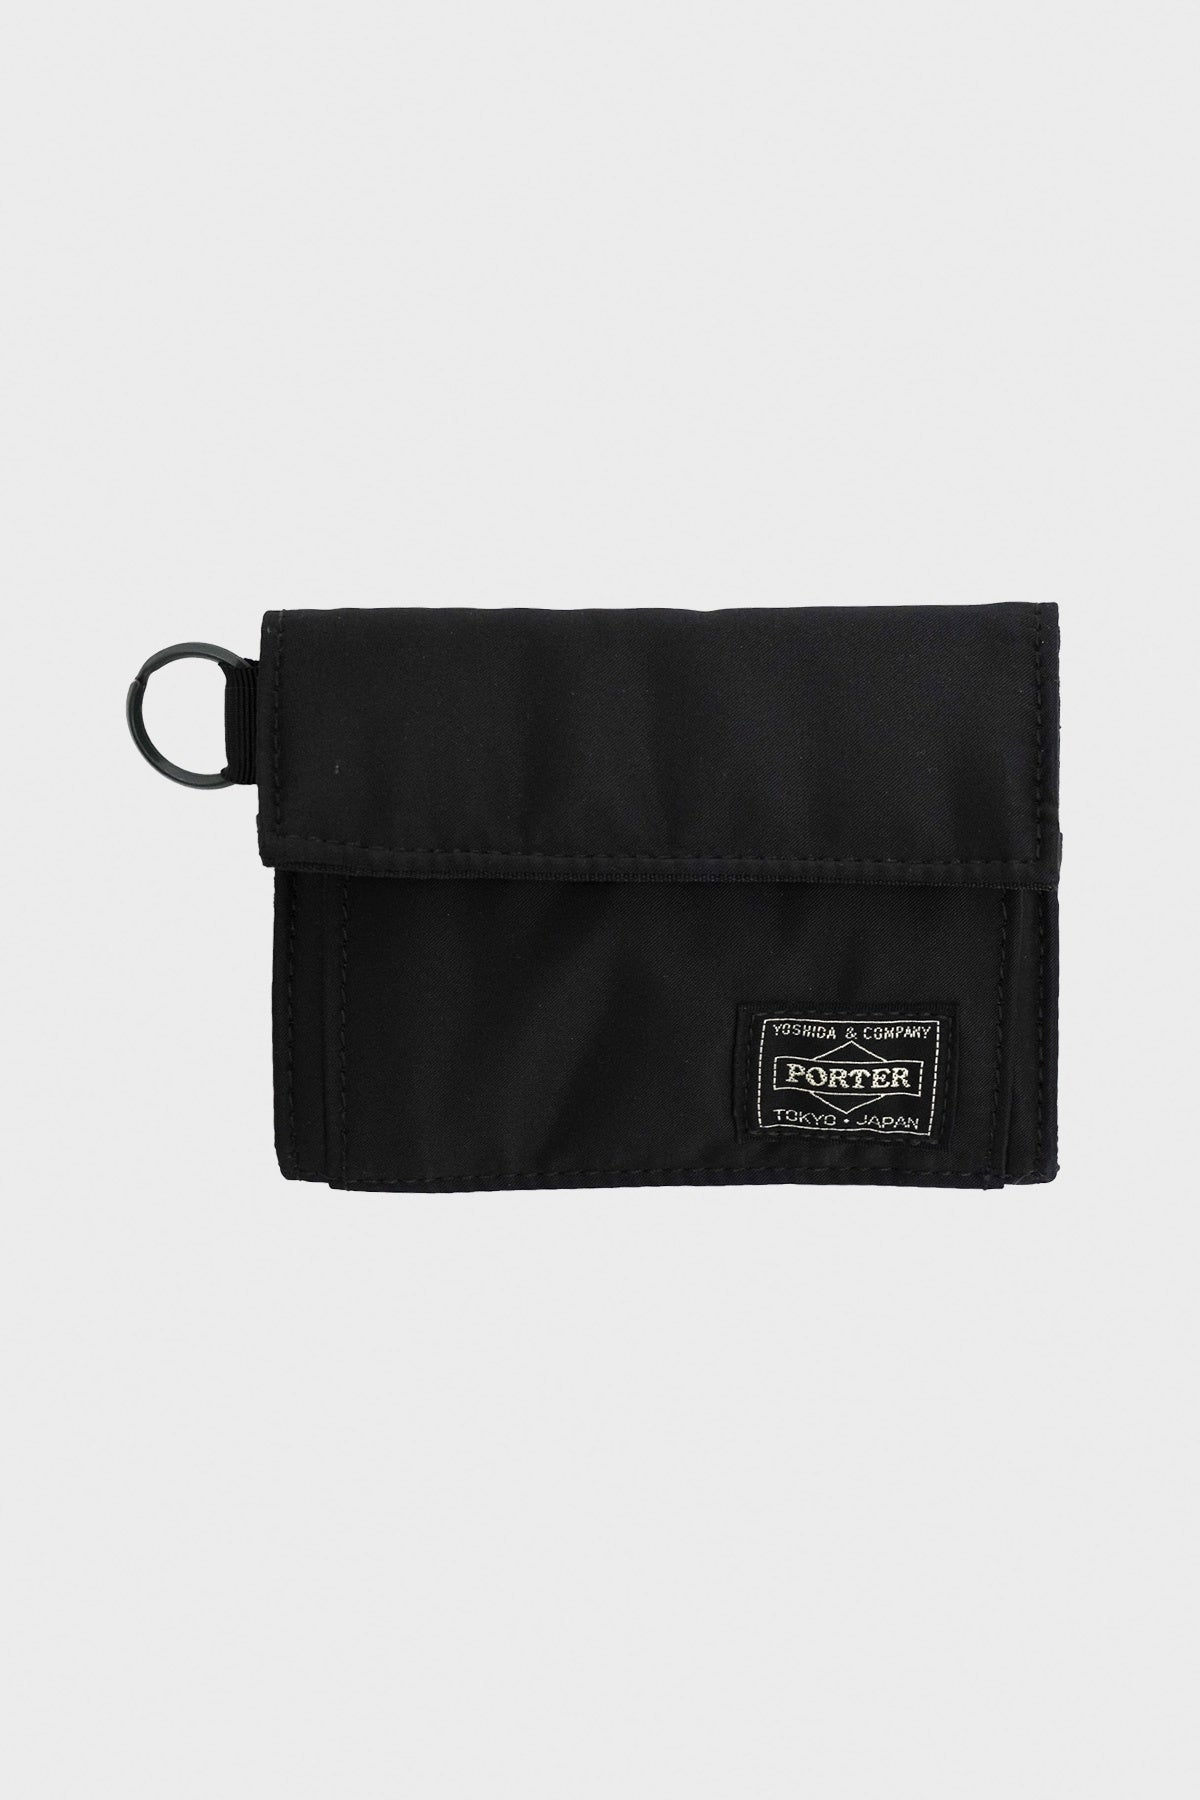 Porter Yoshida and Co - Nylon Wallet - Black - Canoe Club